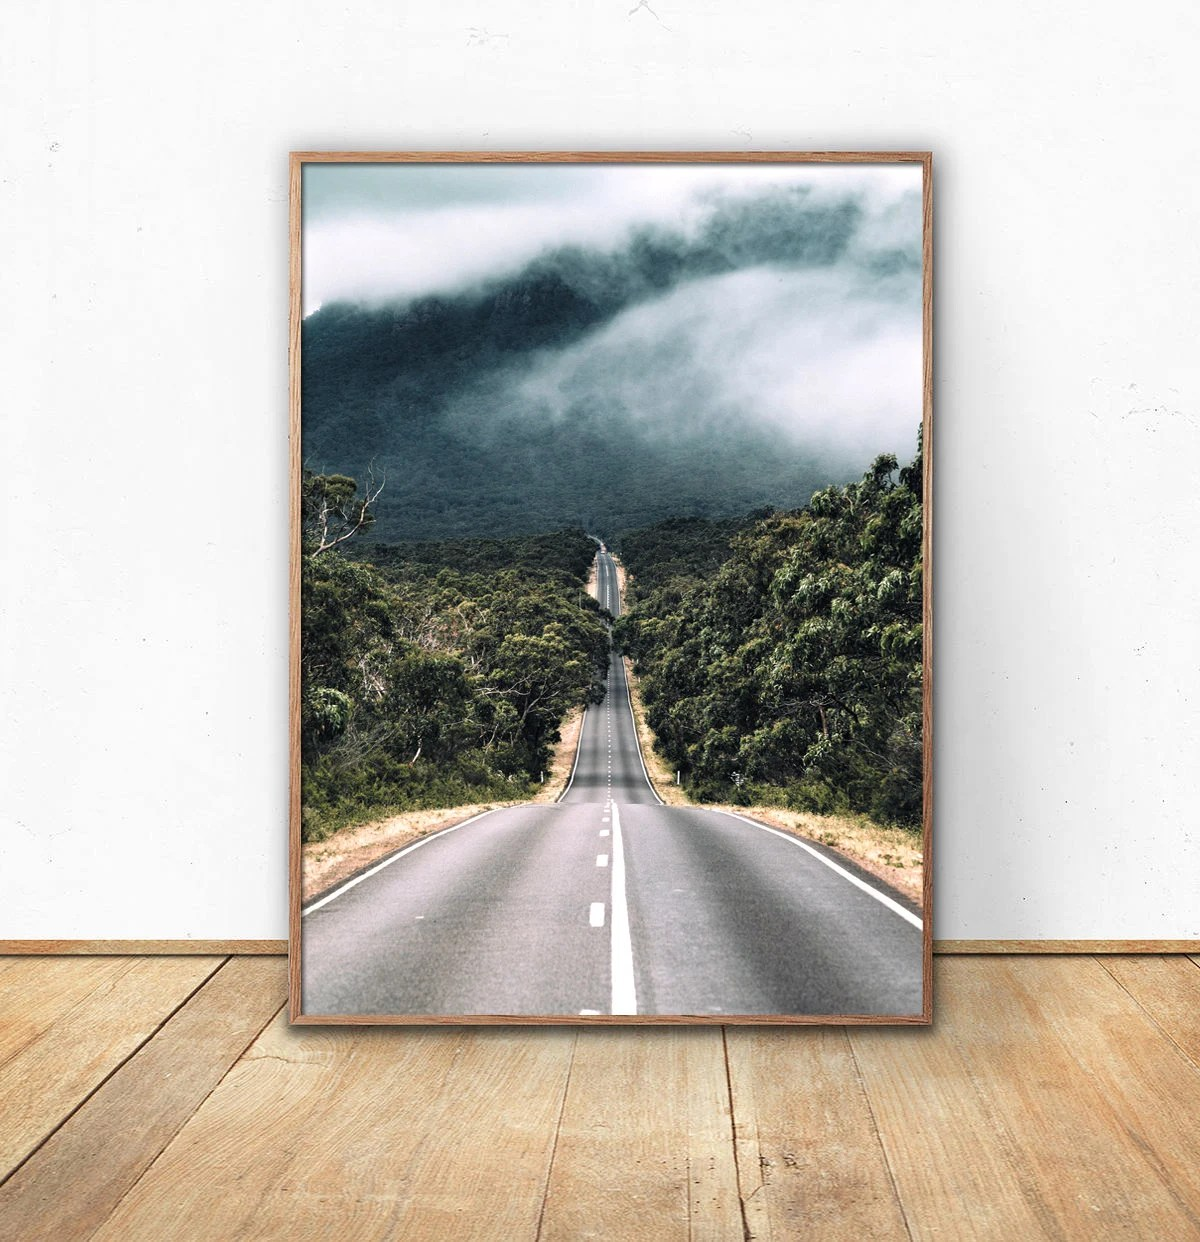 Poster 40x50 Road Printed Poster Route Photo Photography Posters Art Print Decoration Home Wall Forest 50x70 70x100 30x40 40x50 A3 A4 16x20 18x24 20x28